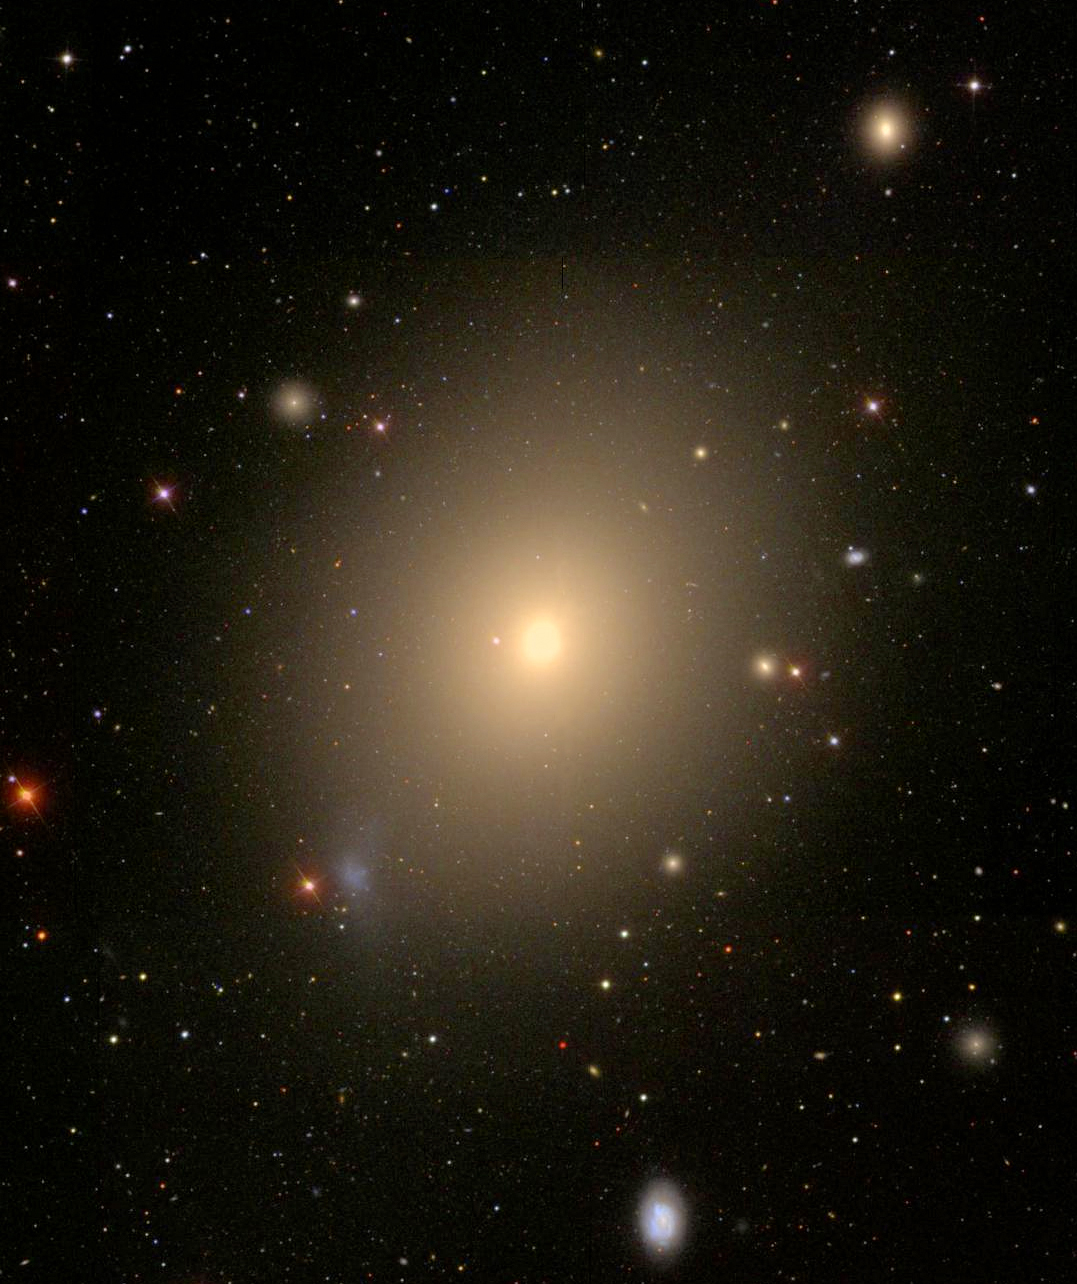 This image of the elliptical galaxy NGC 4472 is from the Sloan Digital Sky Survey. Credit: WikiSky/SDSS